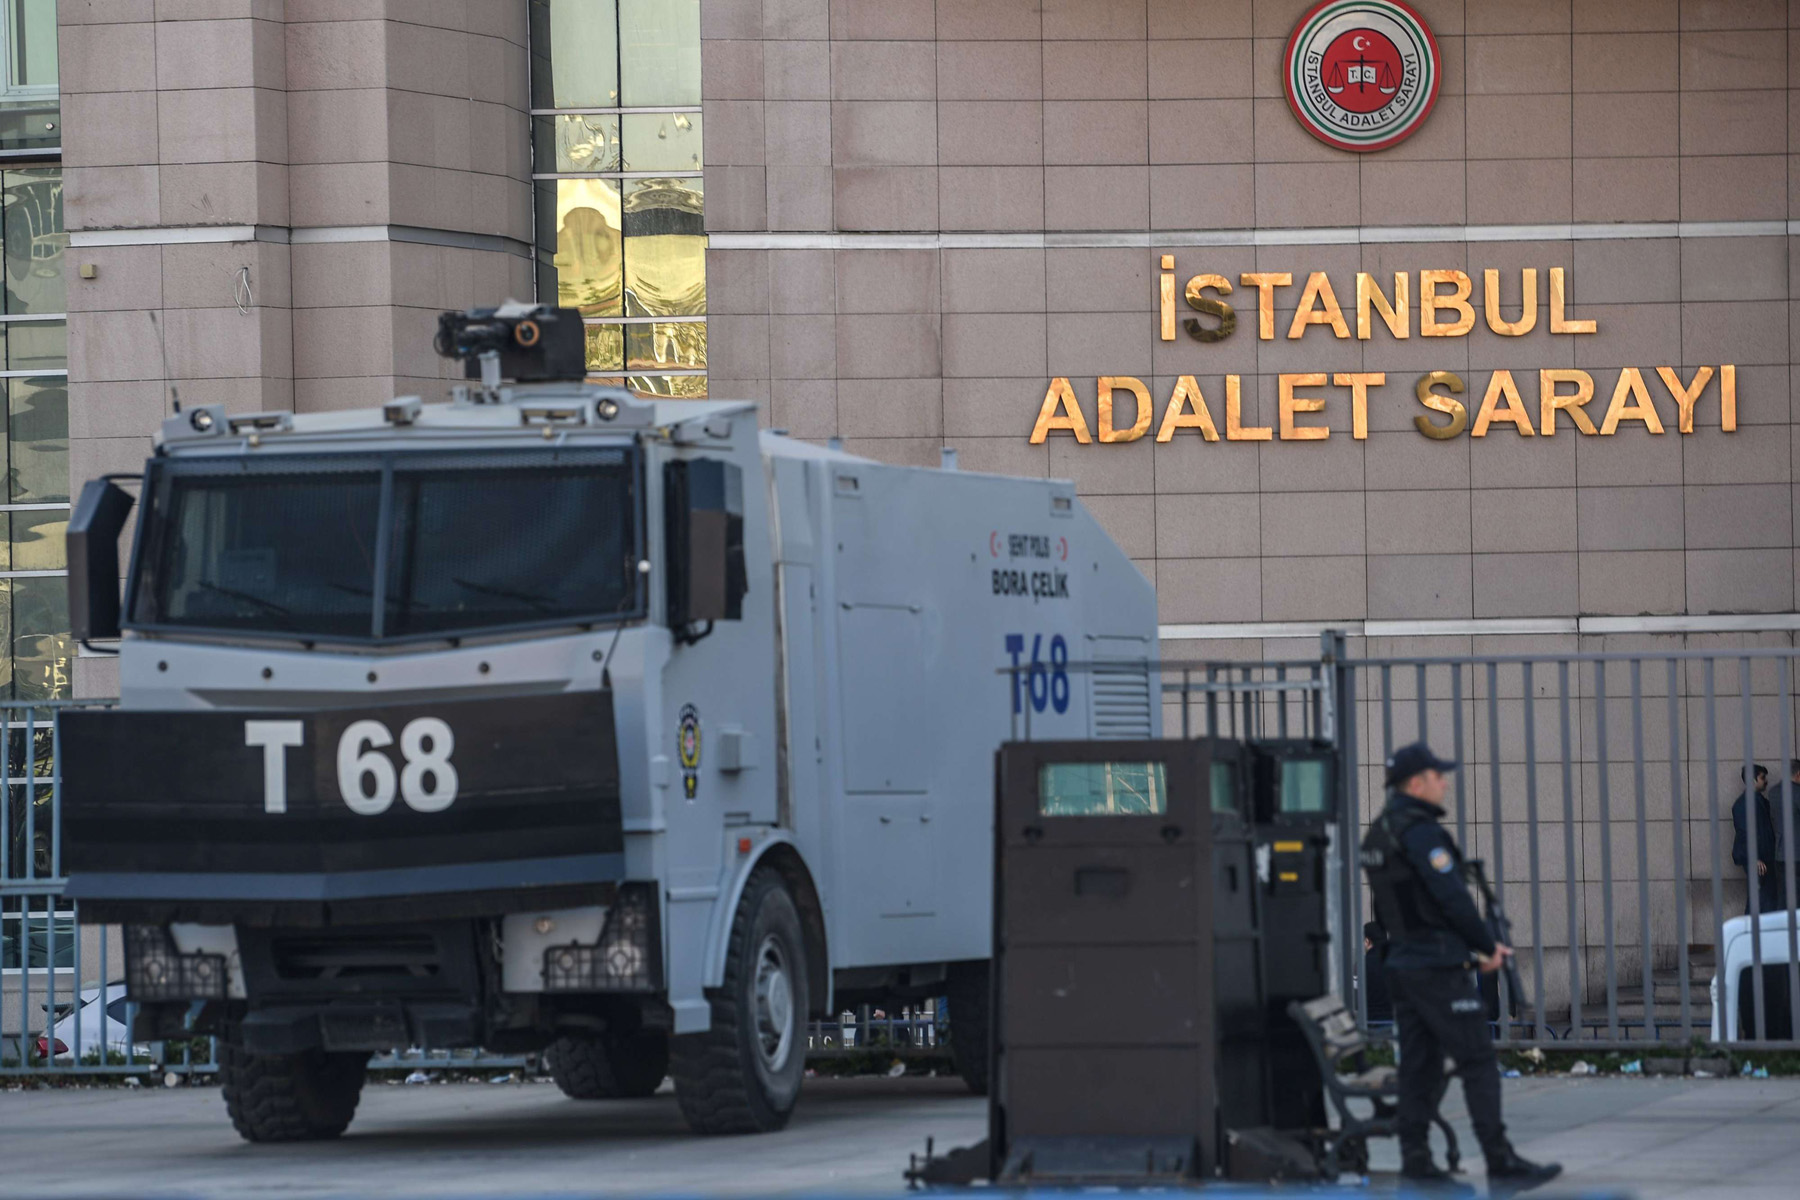 A Turkish police officer stands guard outside Istanbul's courthouse on March 26, 2019. (AFP)